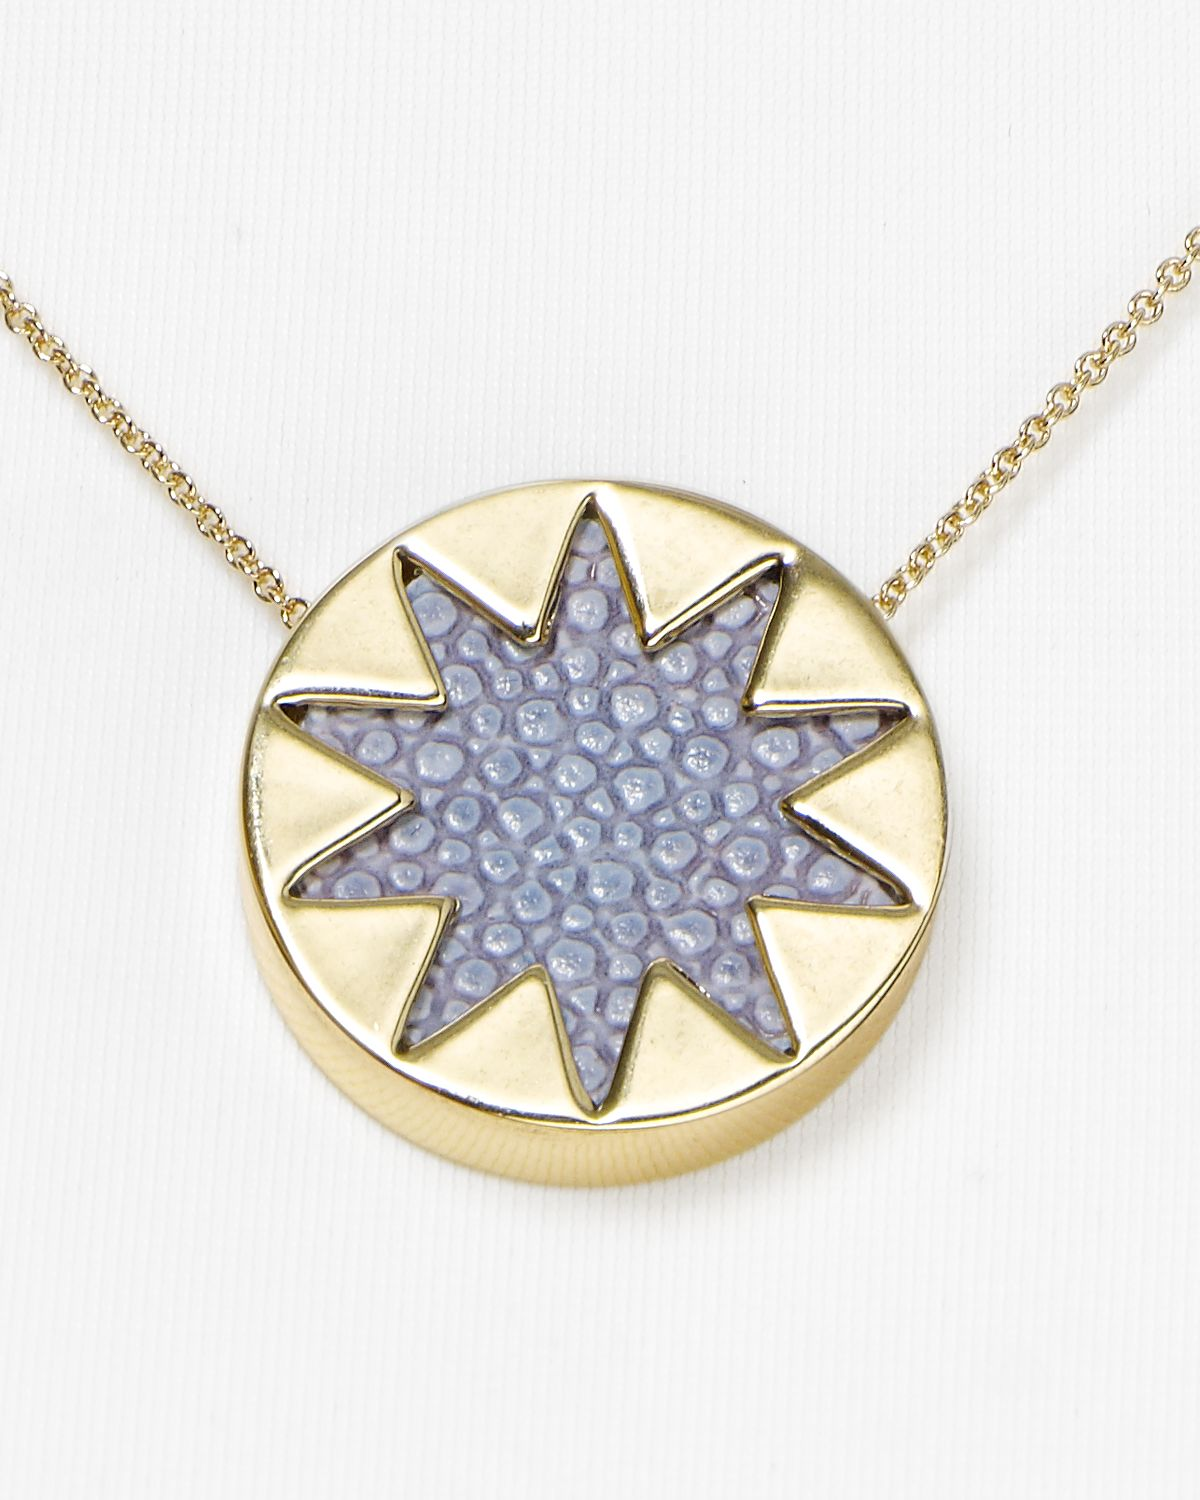 Lyst house of harlow 1960 mini sunburst pendant necklace 16 in gallery mozeypictures Choice Image